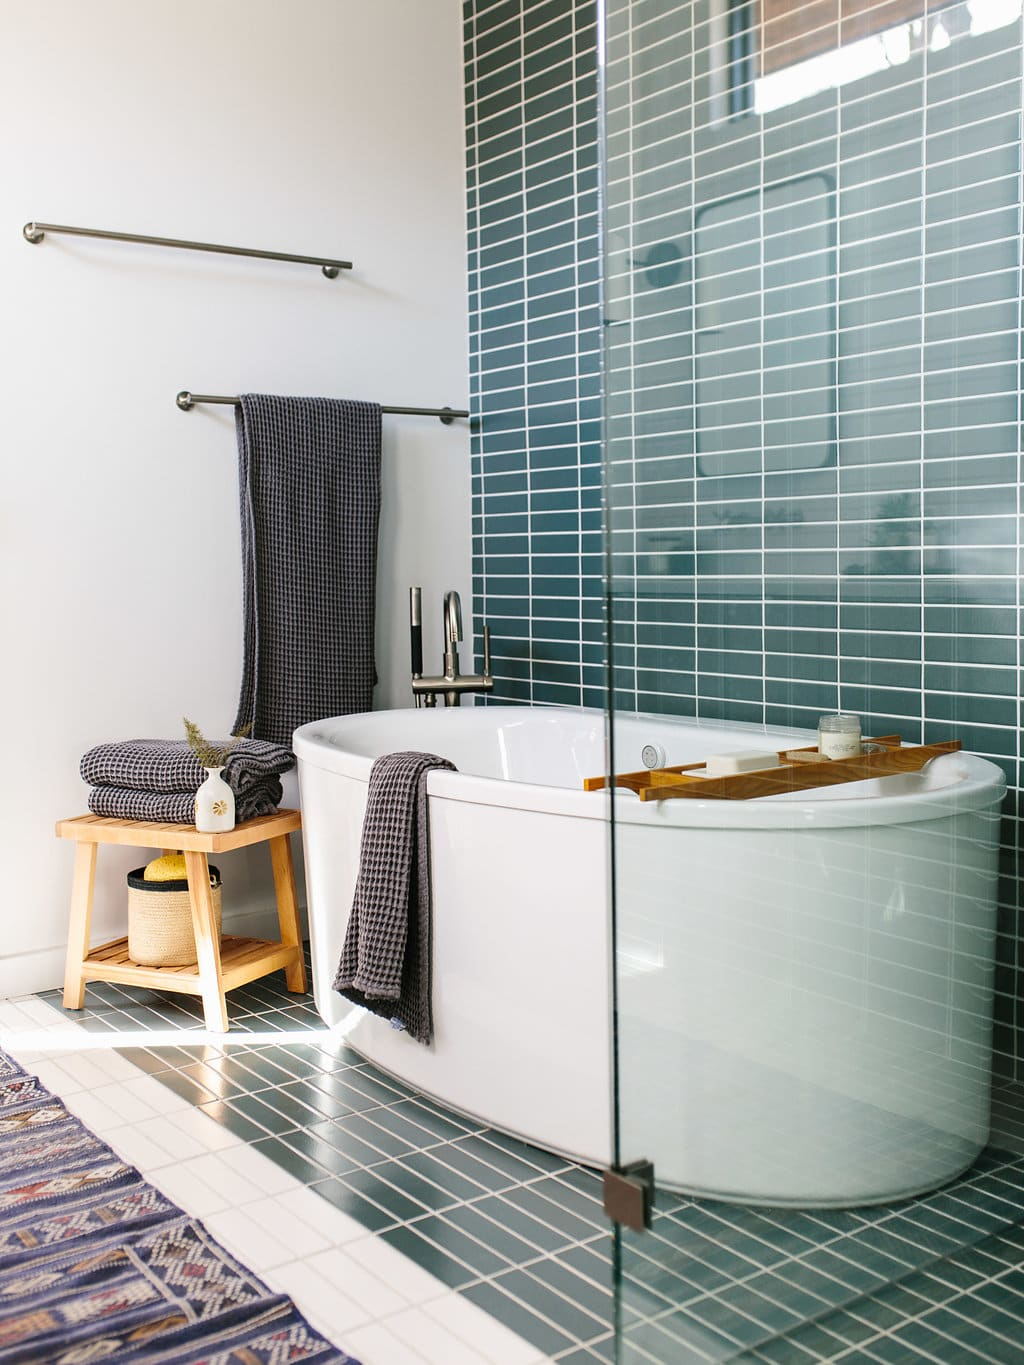 the effortless chic bathroom towel styling hung over bath tub with green wall tiles